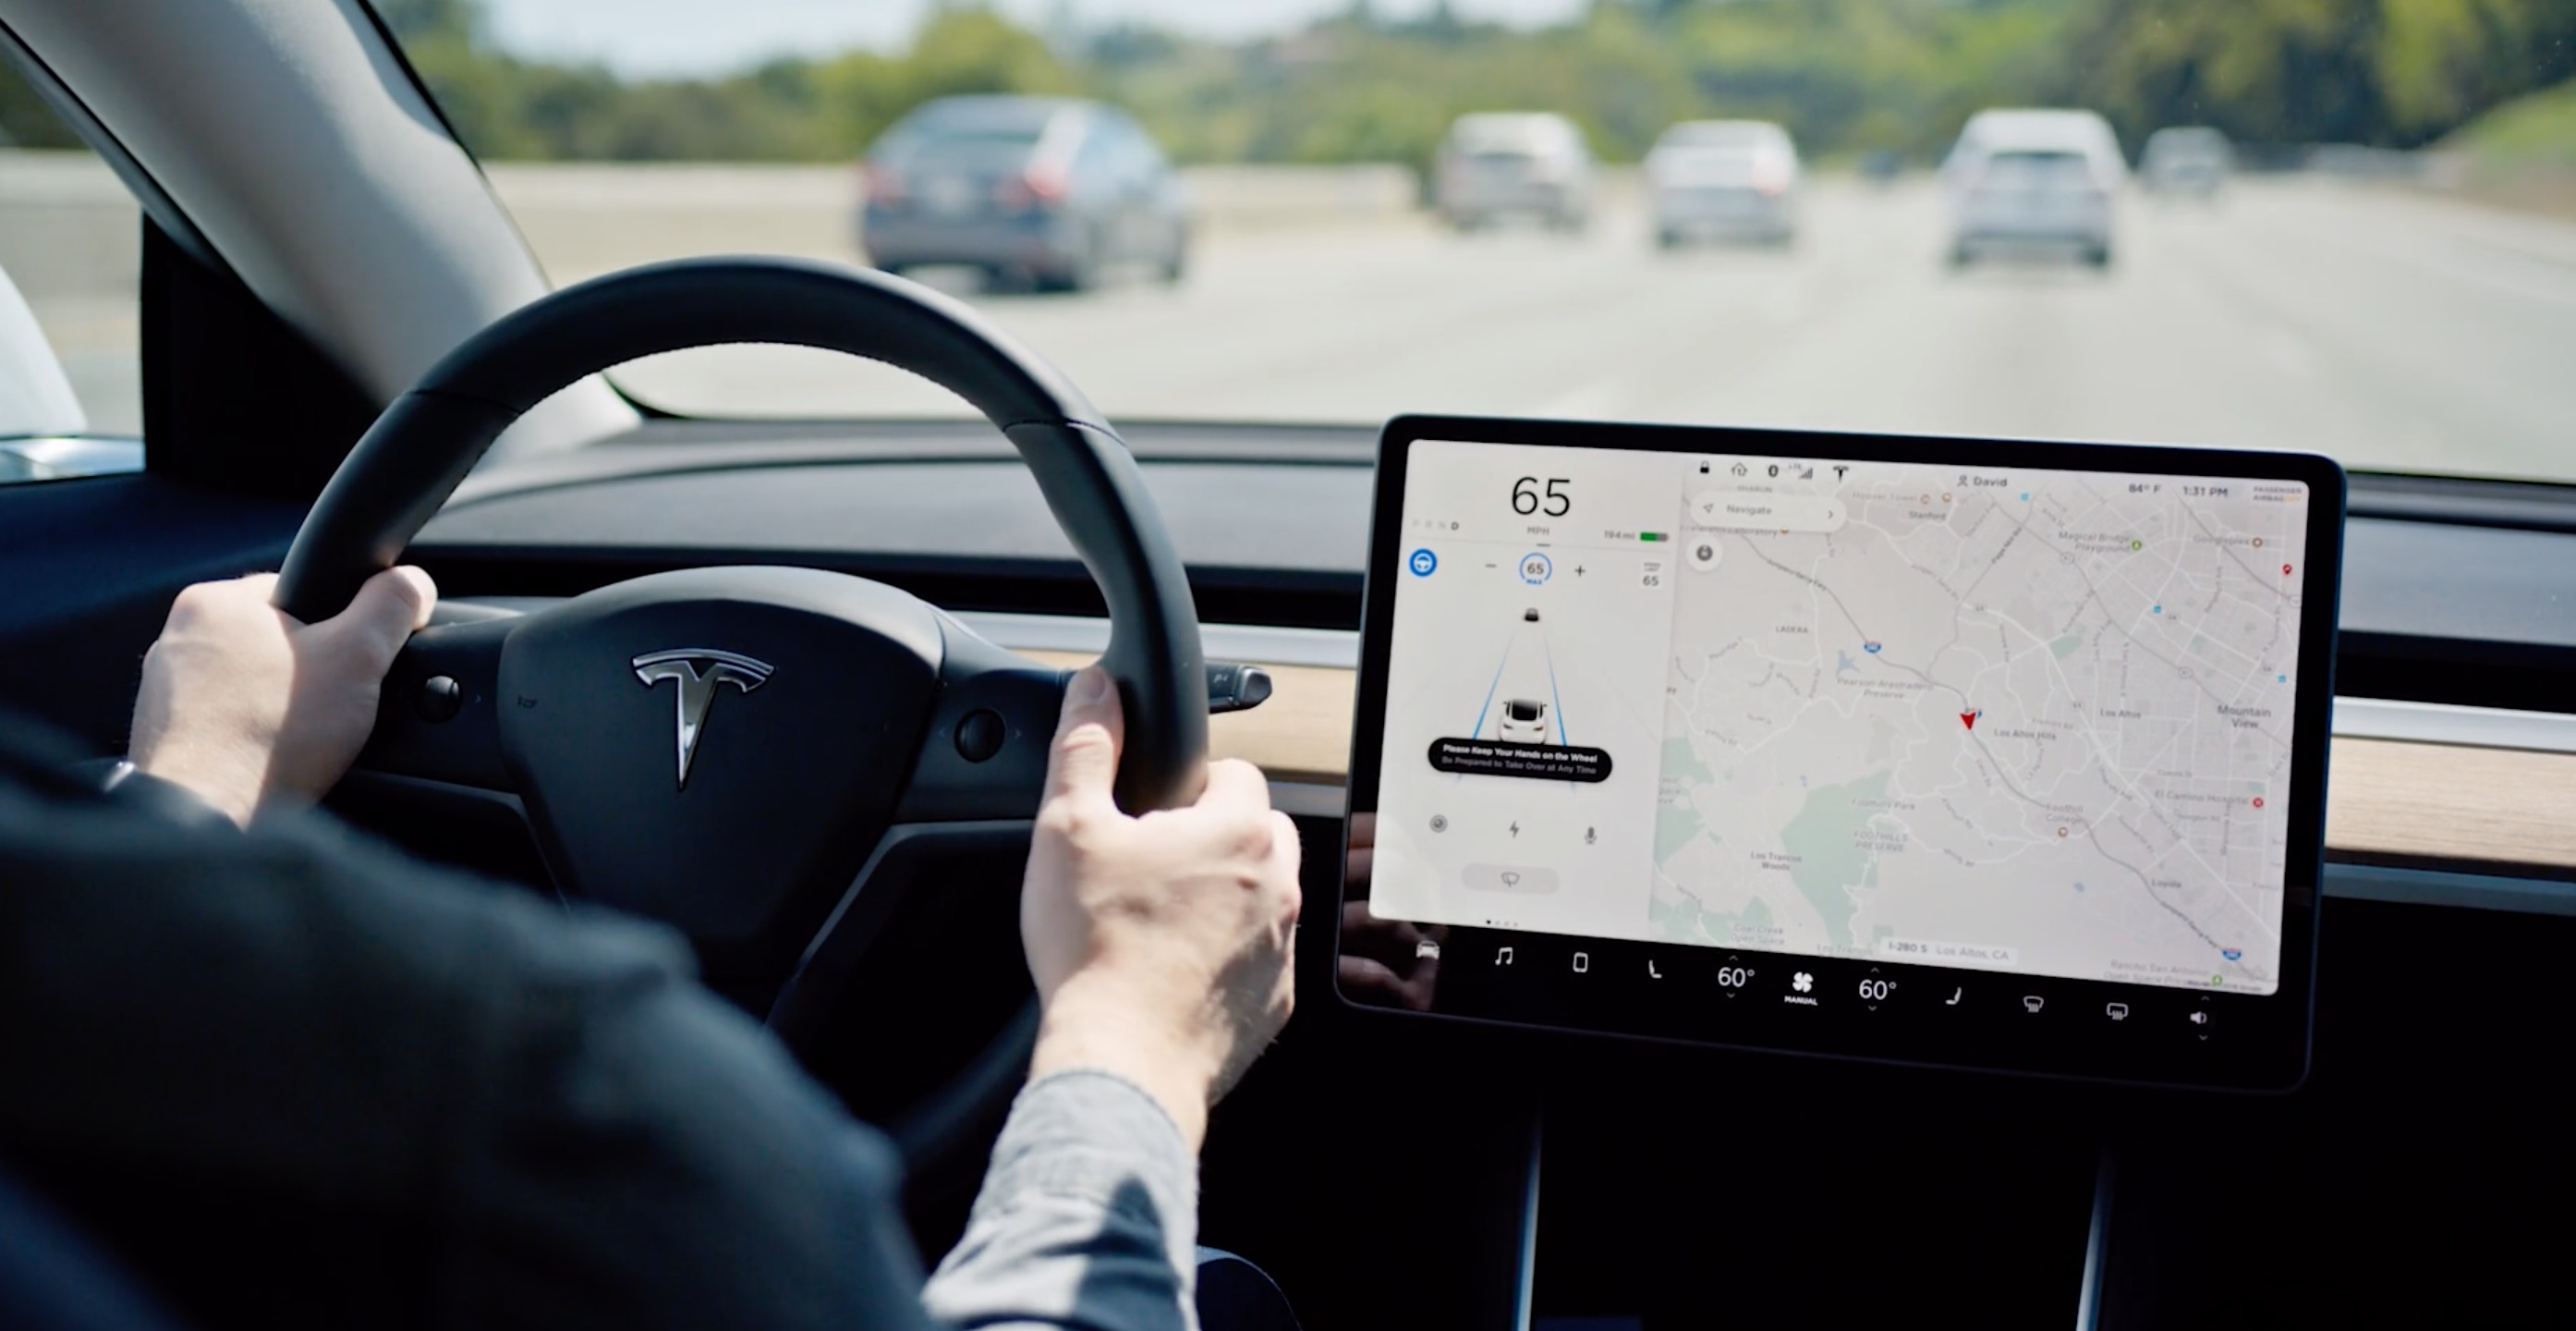 Tesla nerfs Autopilot in Europe due to new regulations